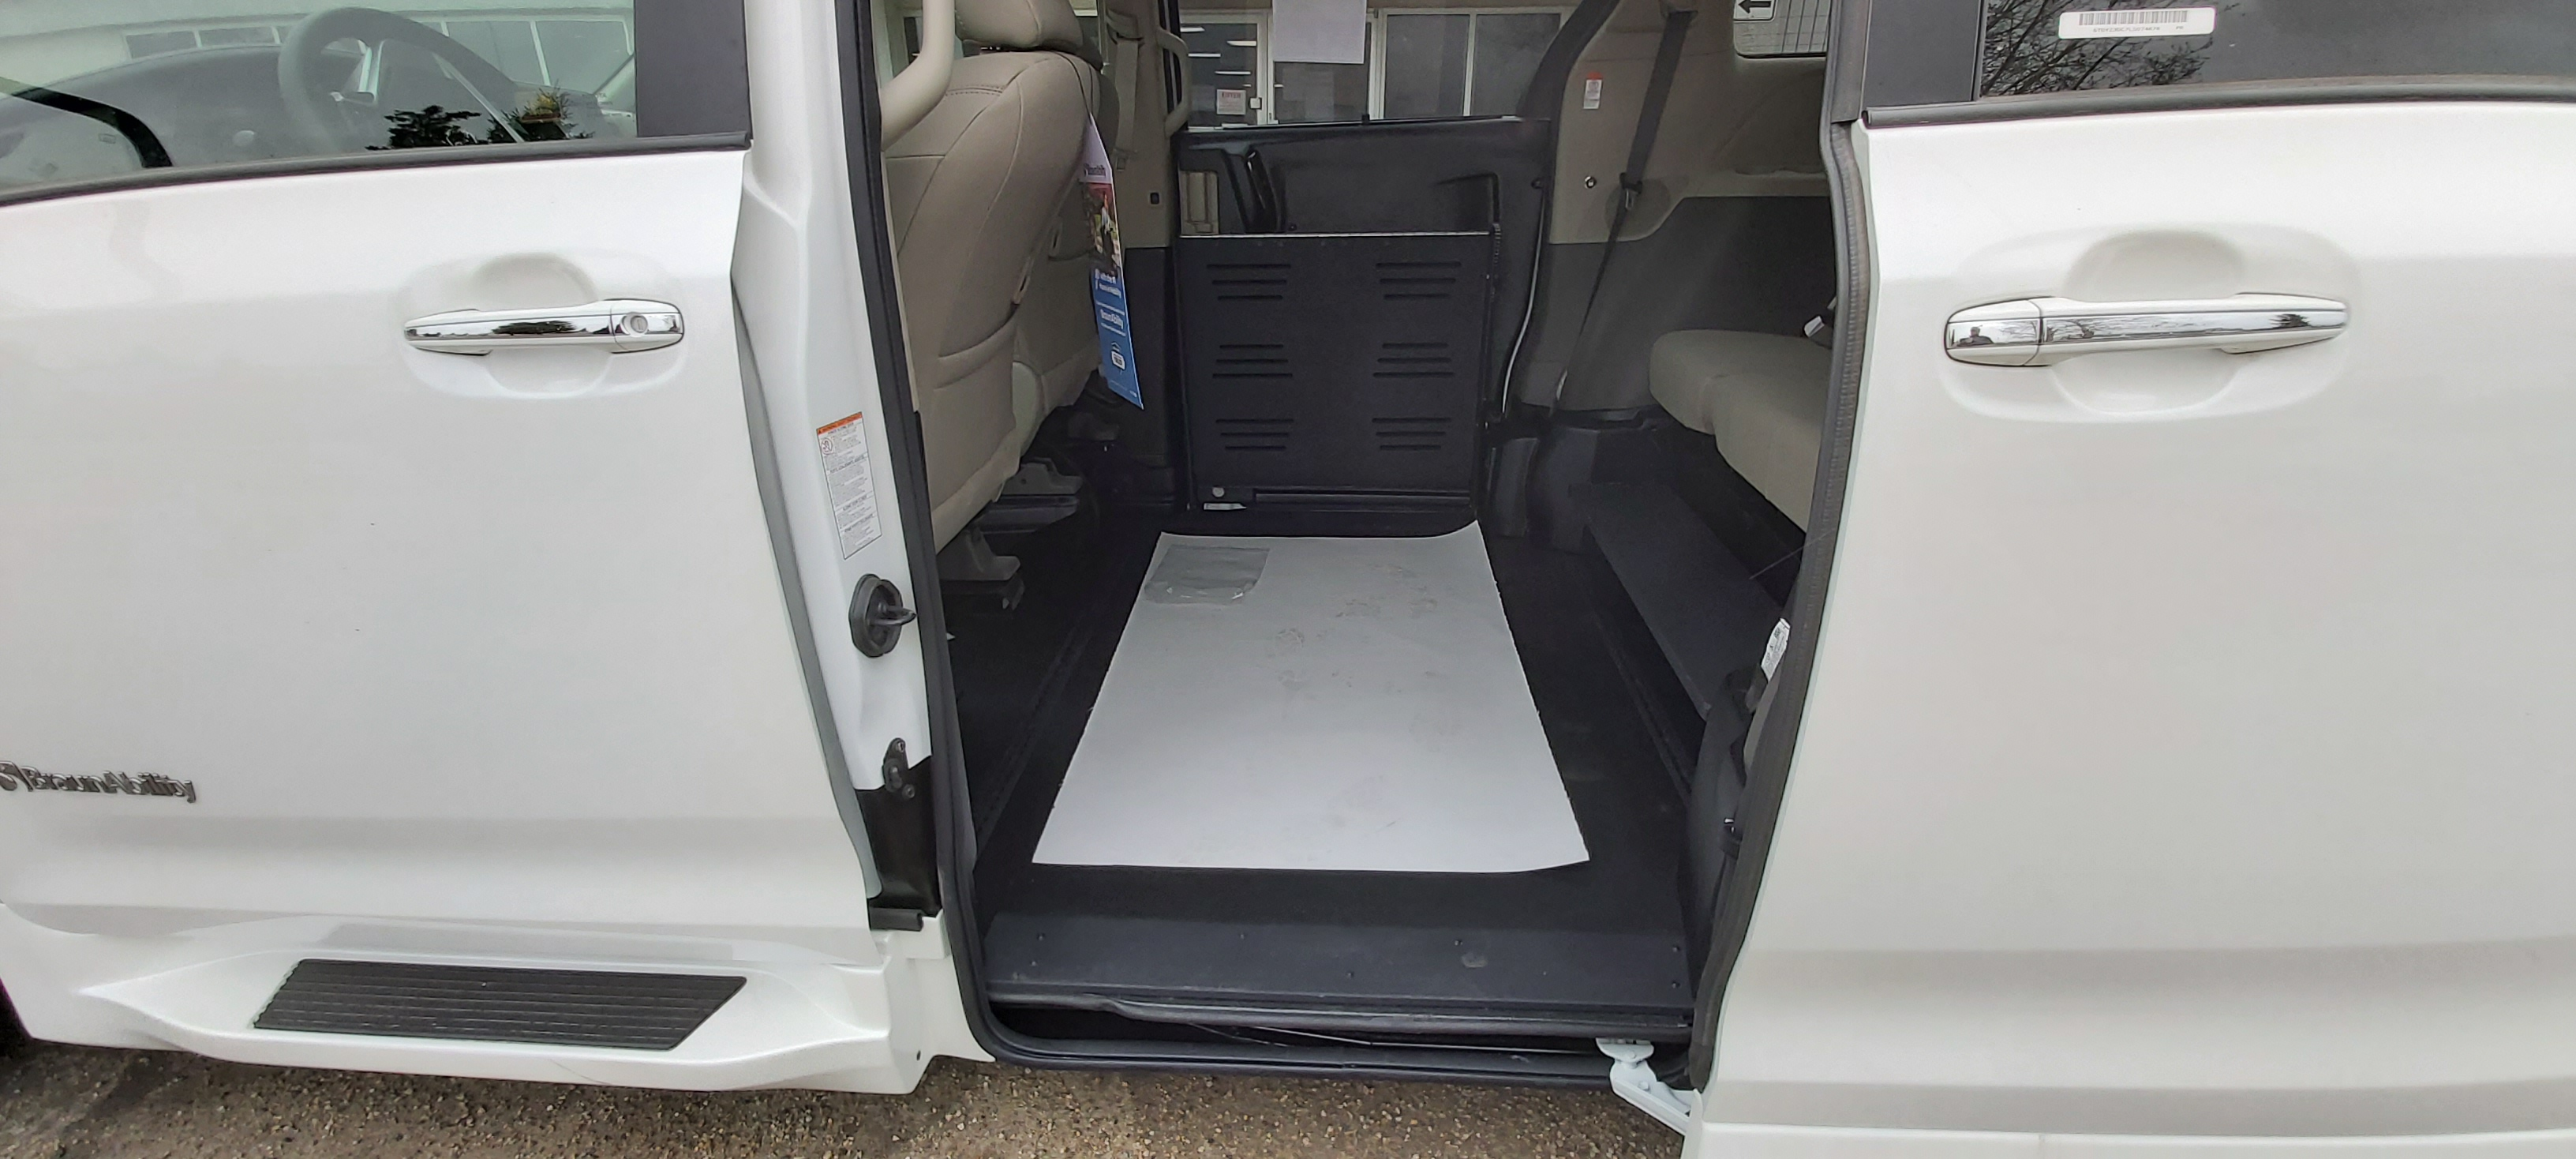 Toyota Sienna Van Conversion 8 9 product image